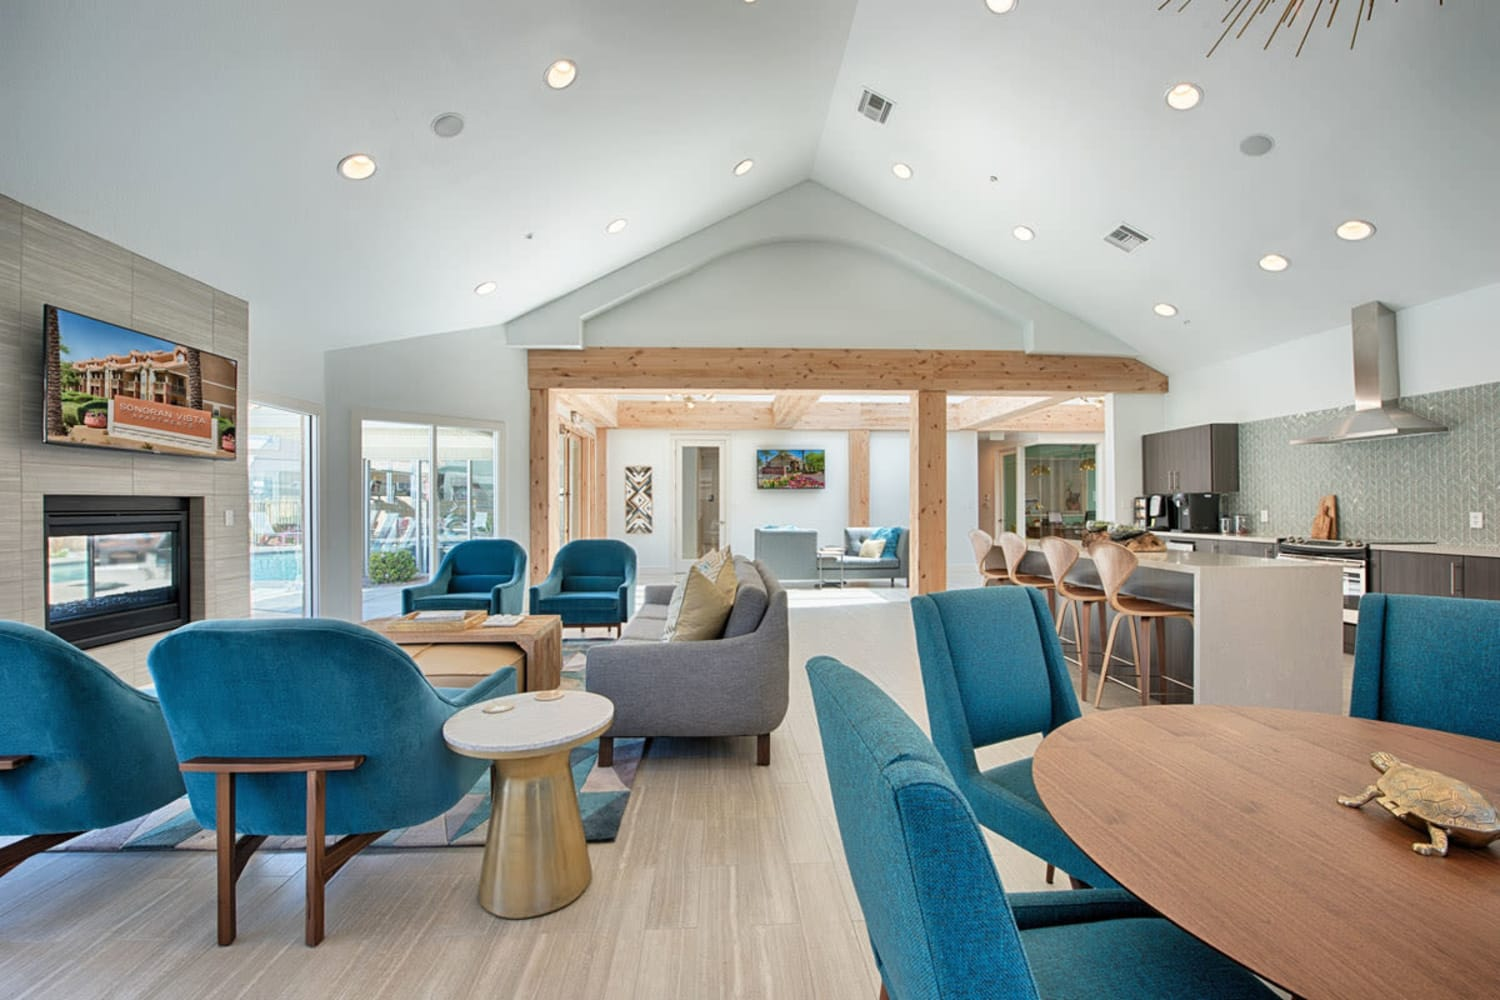 Clubhouse seating at Sonoran Vista Apartments in Scottsdale, Arizona